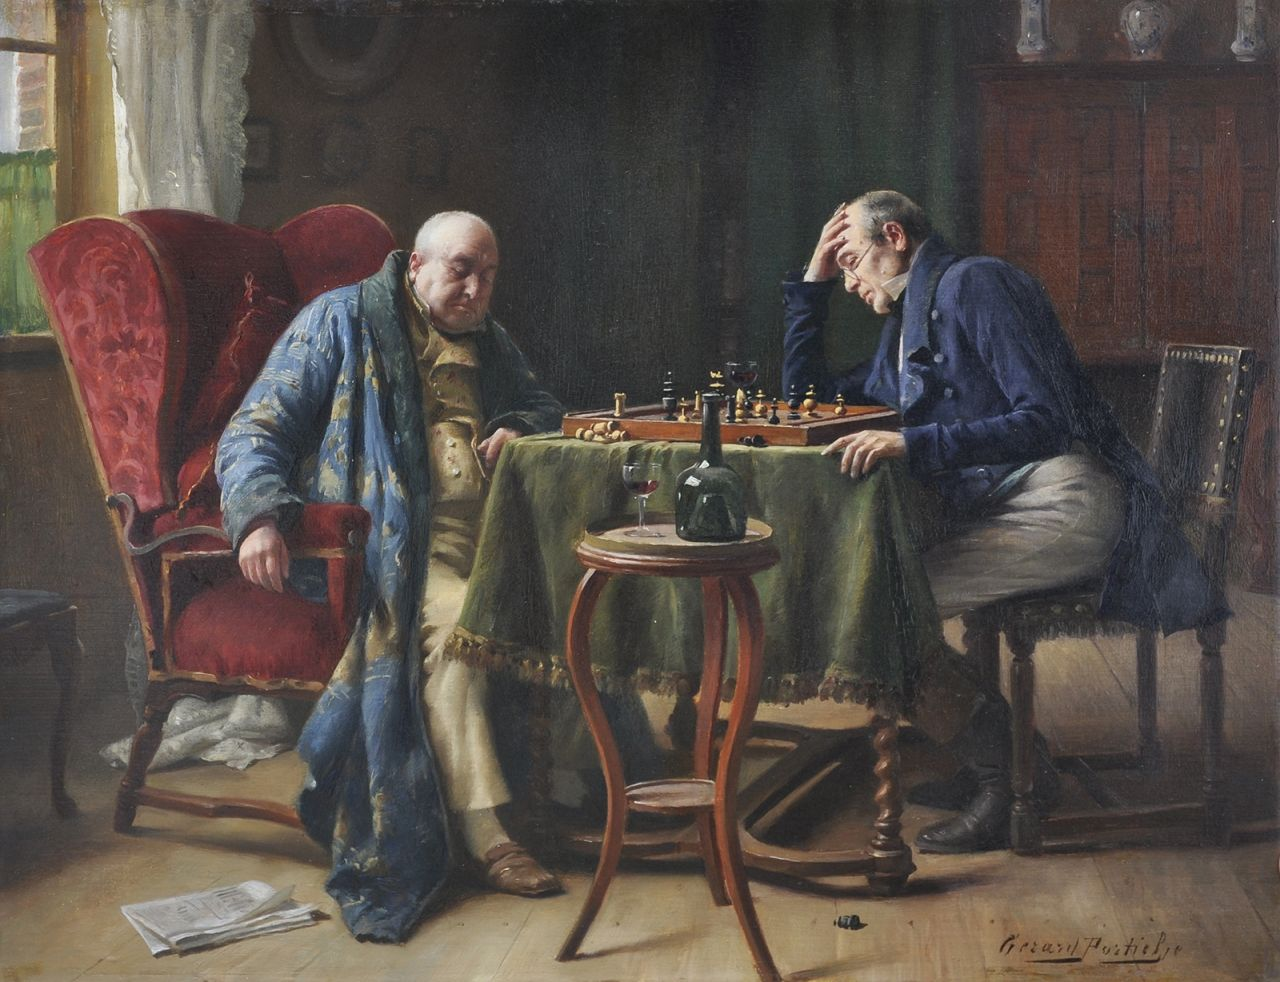 'Gerard' Joseph Portielje | The chess game, oil on panel, 37.3 x 46.0 cm, signed l.r.